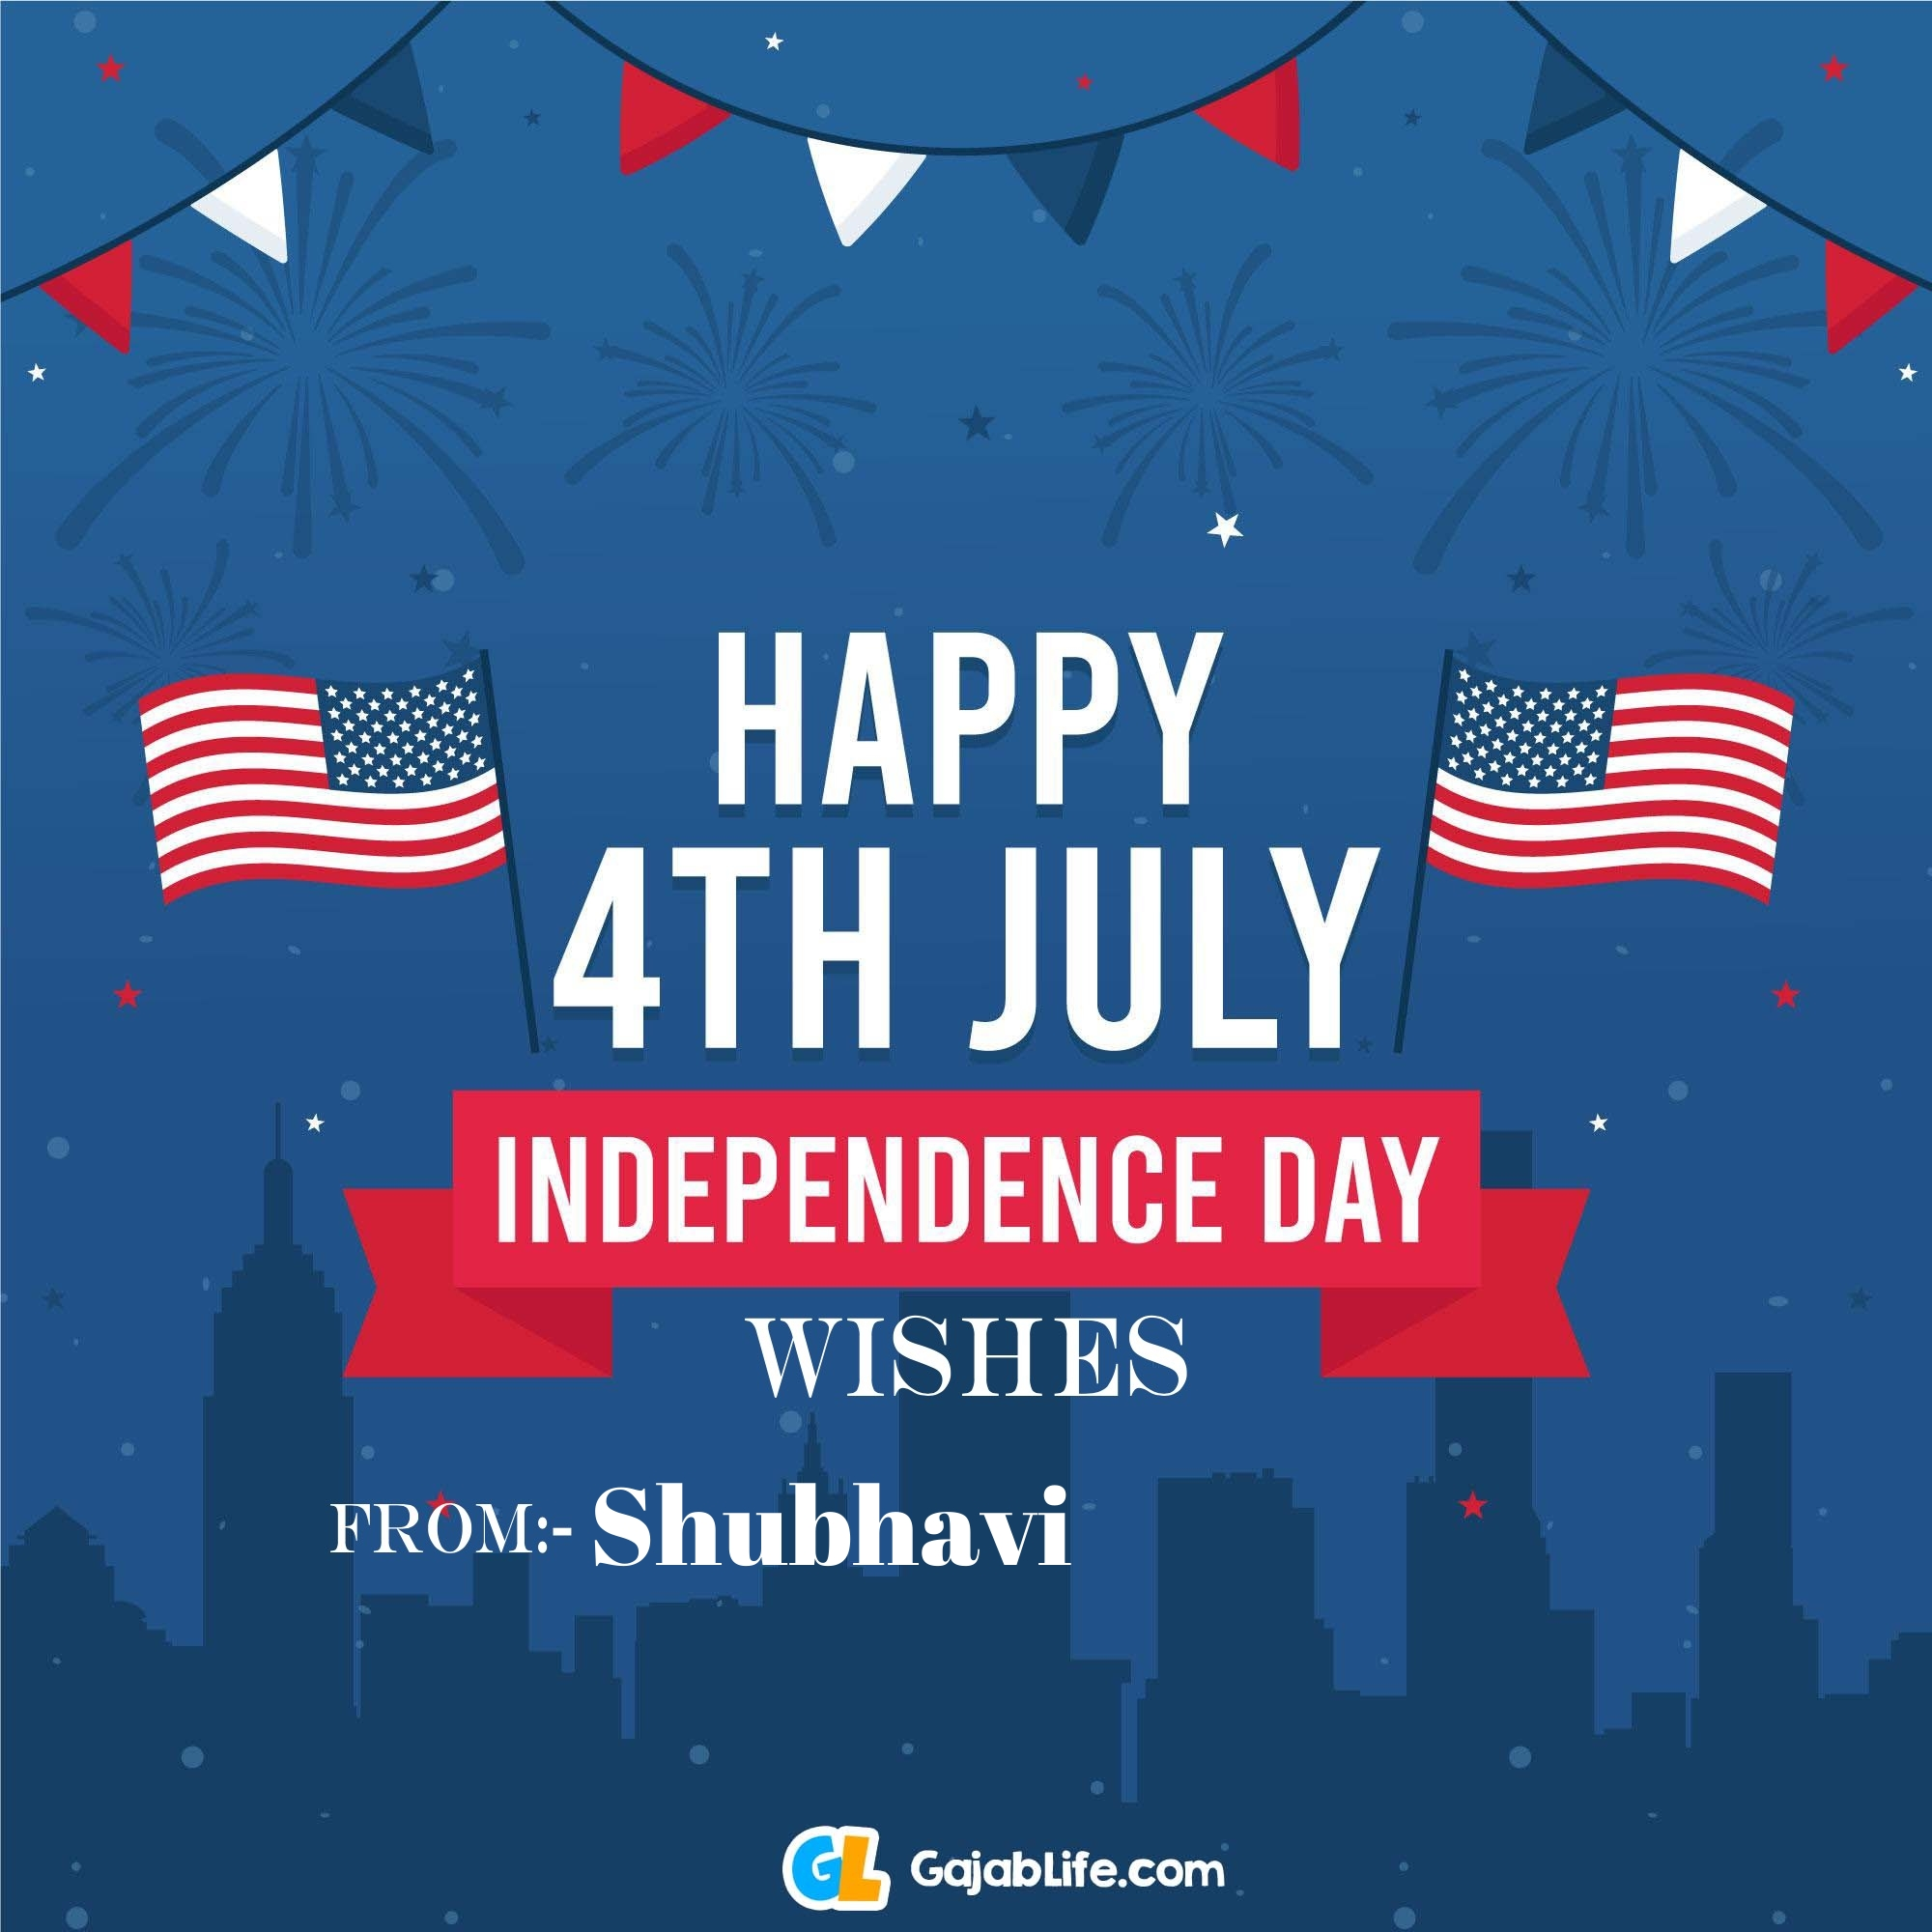 Shubhavi happy independence day united states of america images